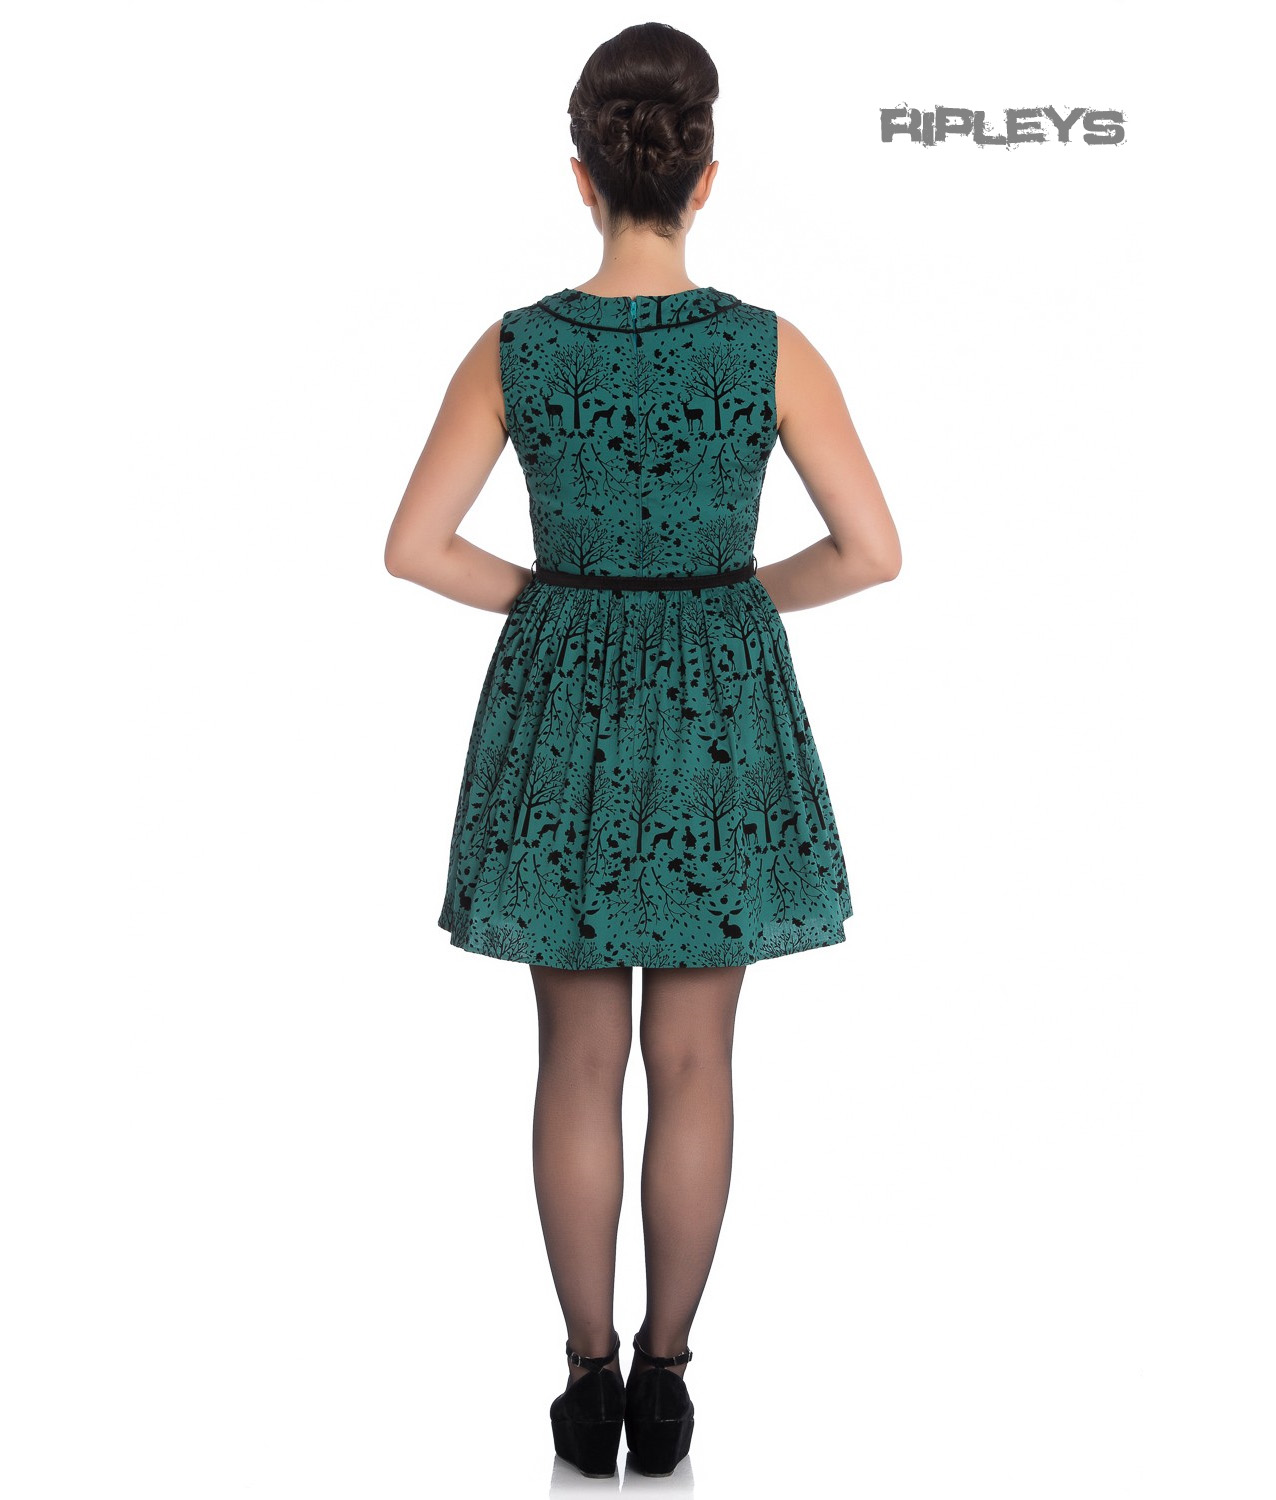 Hell-Bunny-50s-Mini-Skater-Dress-Woodland-Trees-SHERWOOD-Dark-Green-All-Sizes thumbnail 28